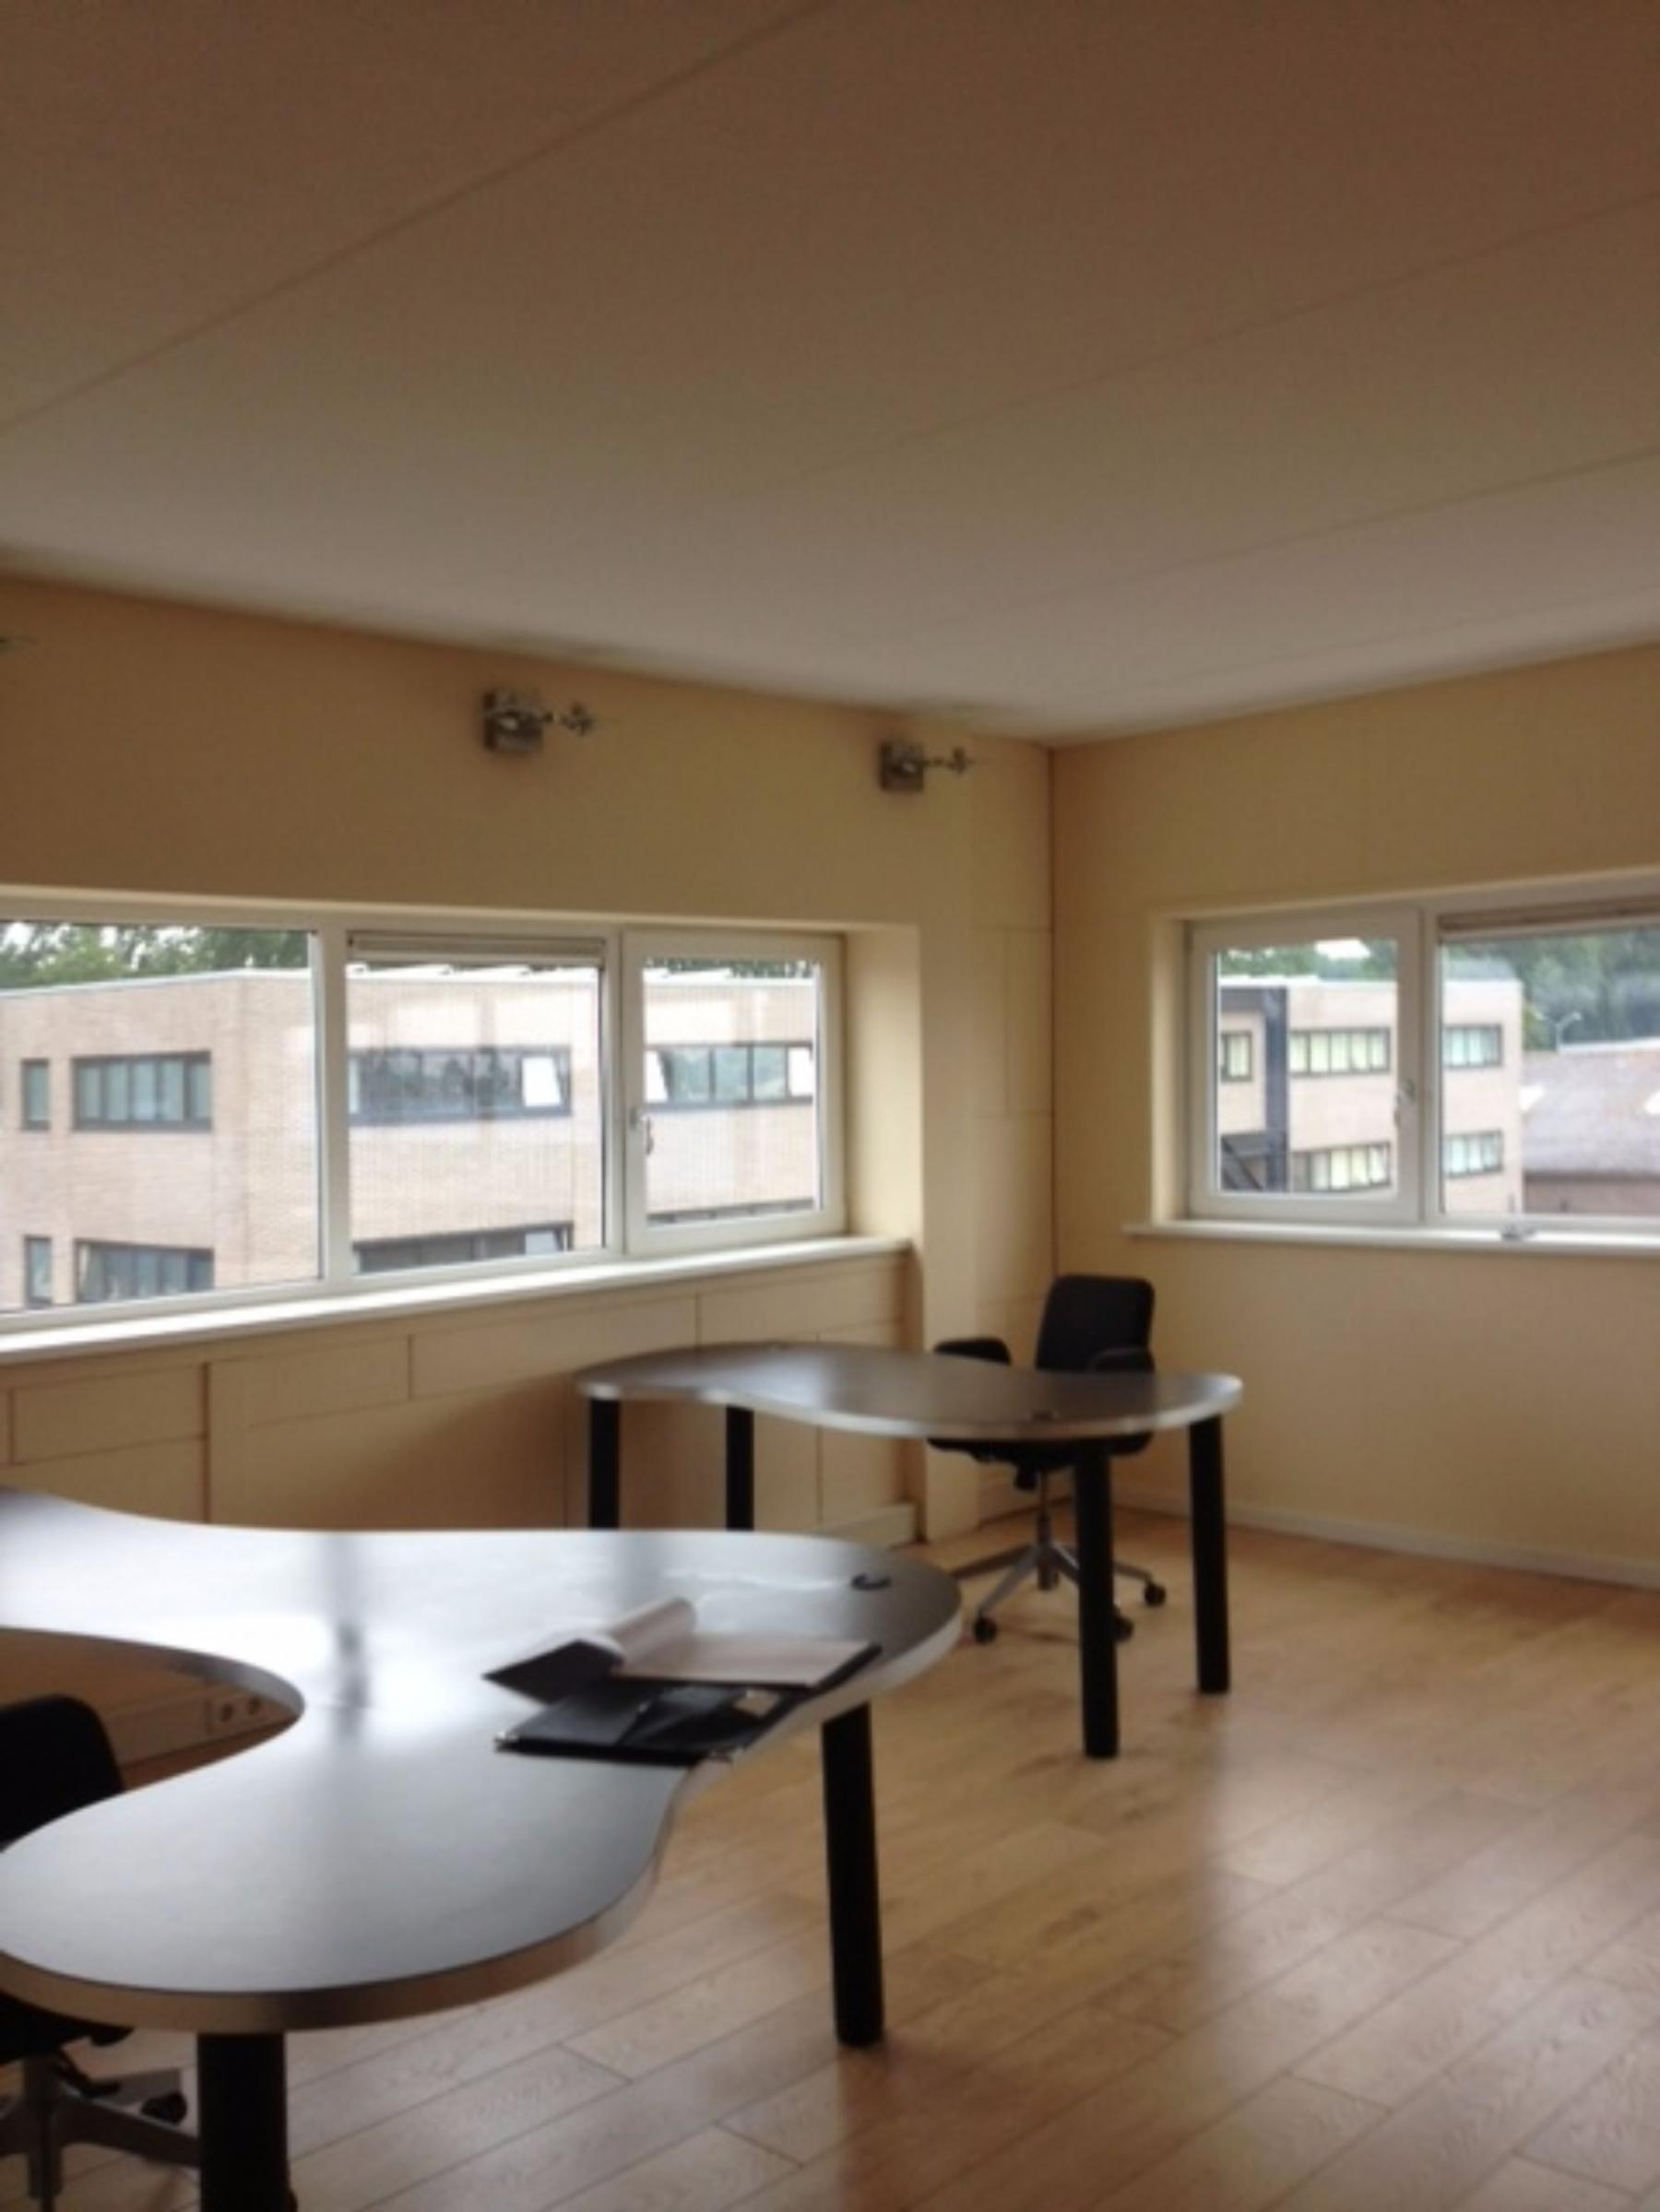 Office space in Alkmaar with table and chairs